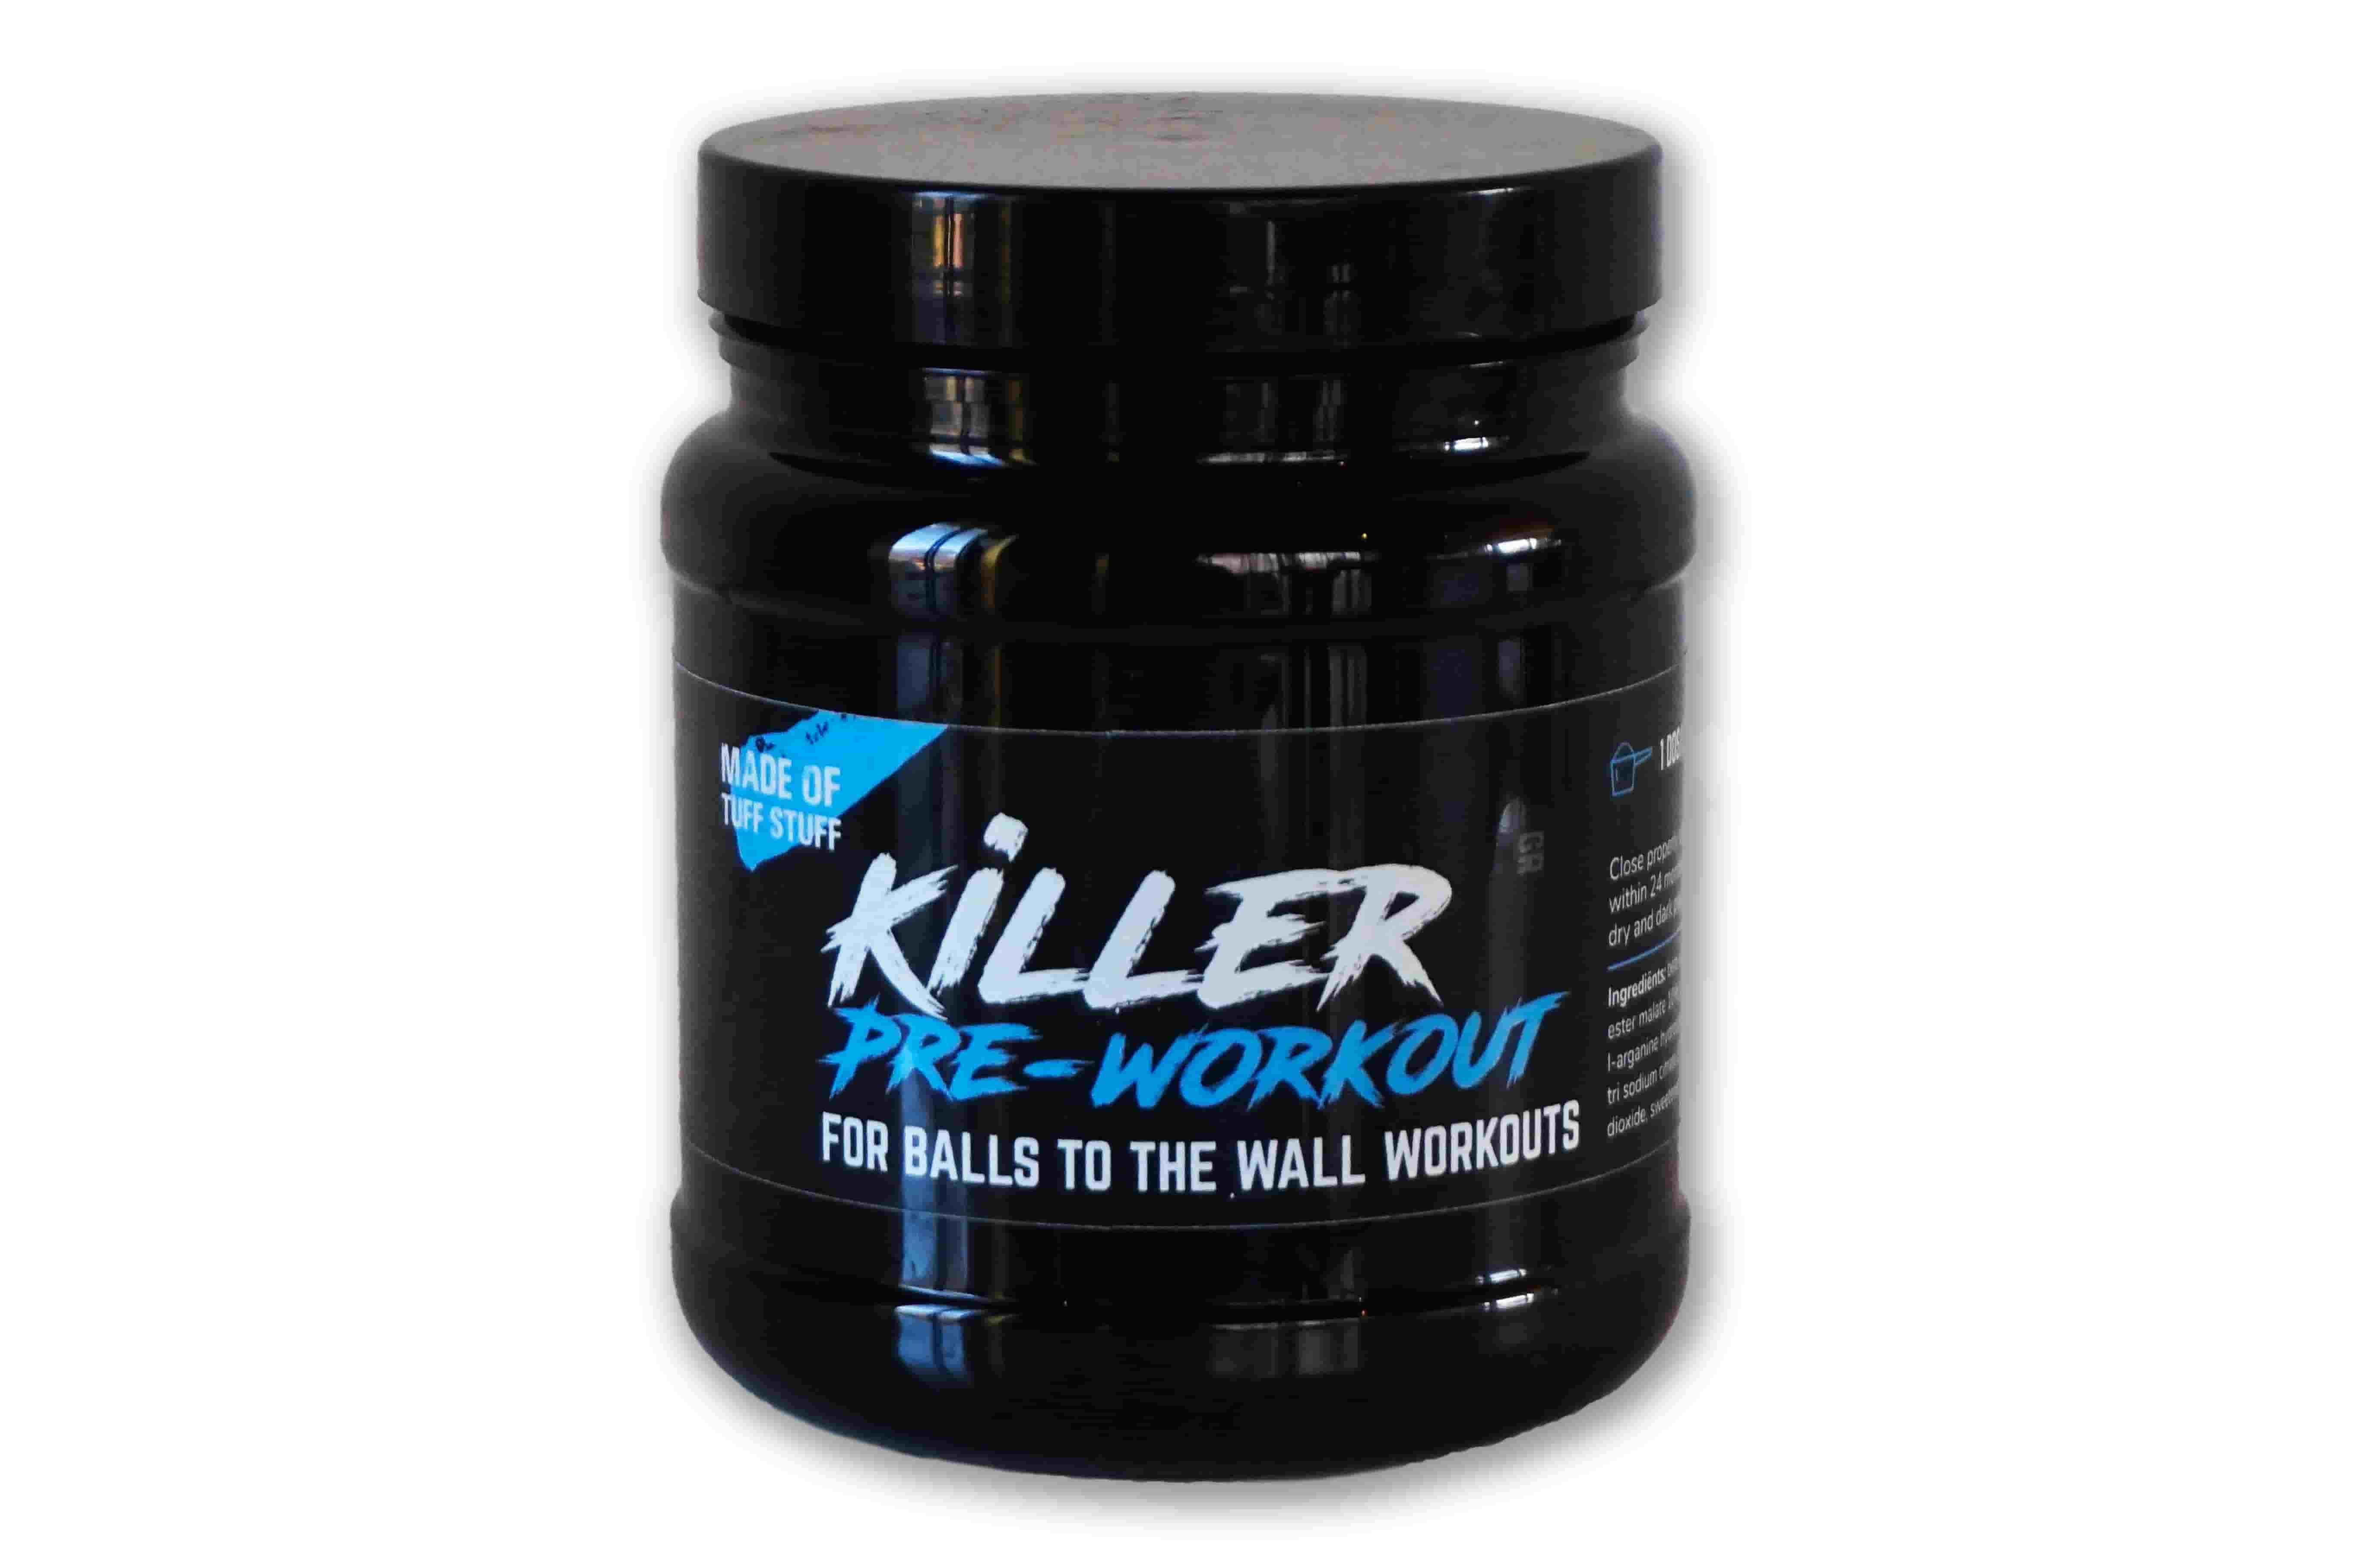 Killer Pre-Workout